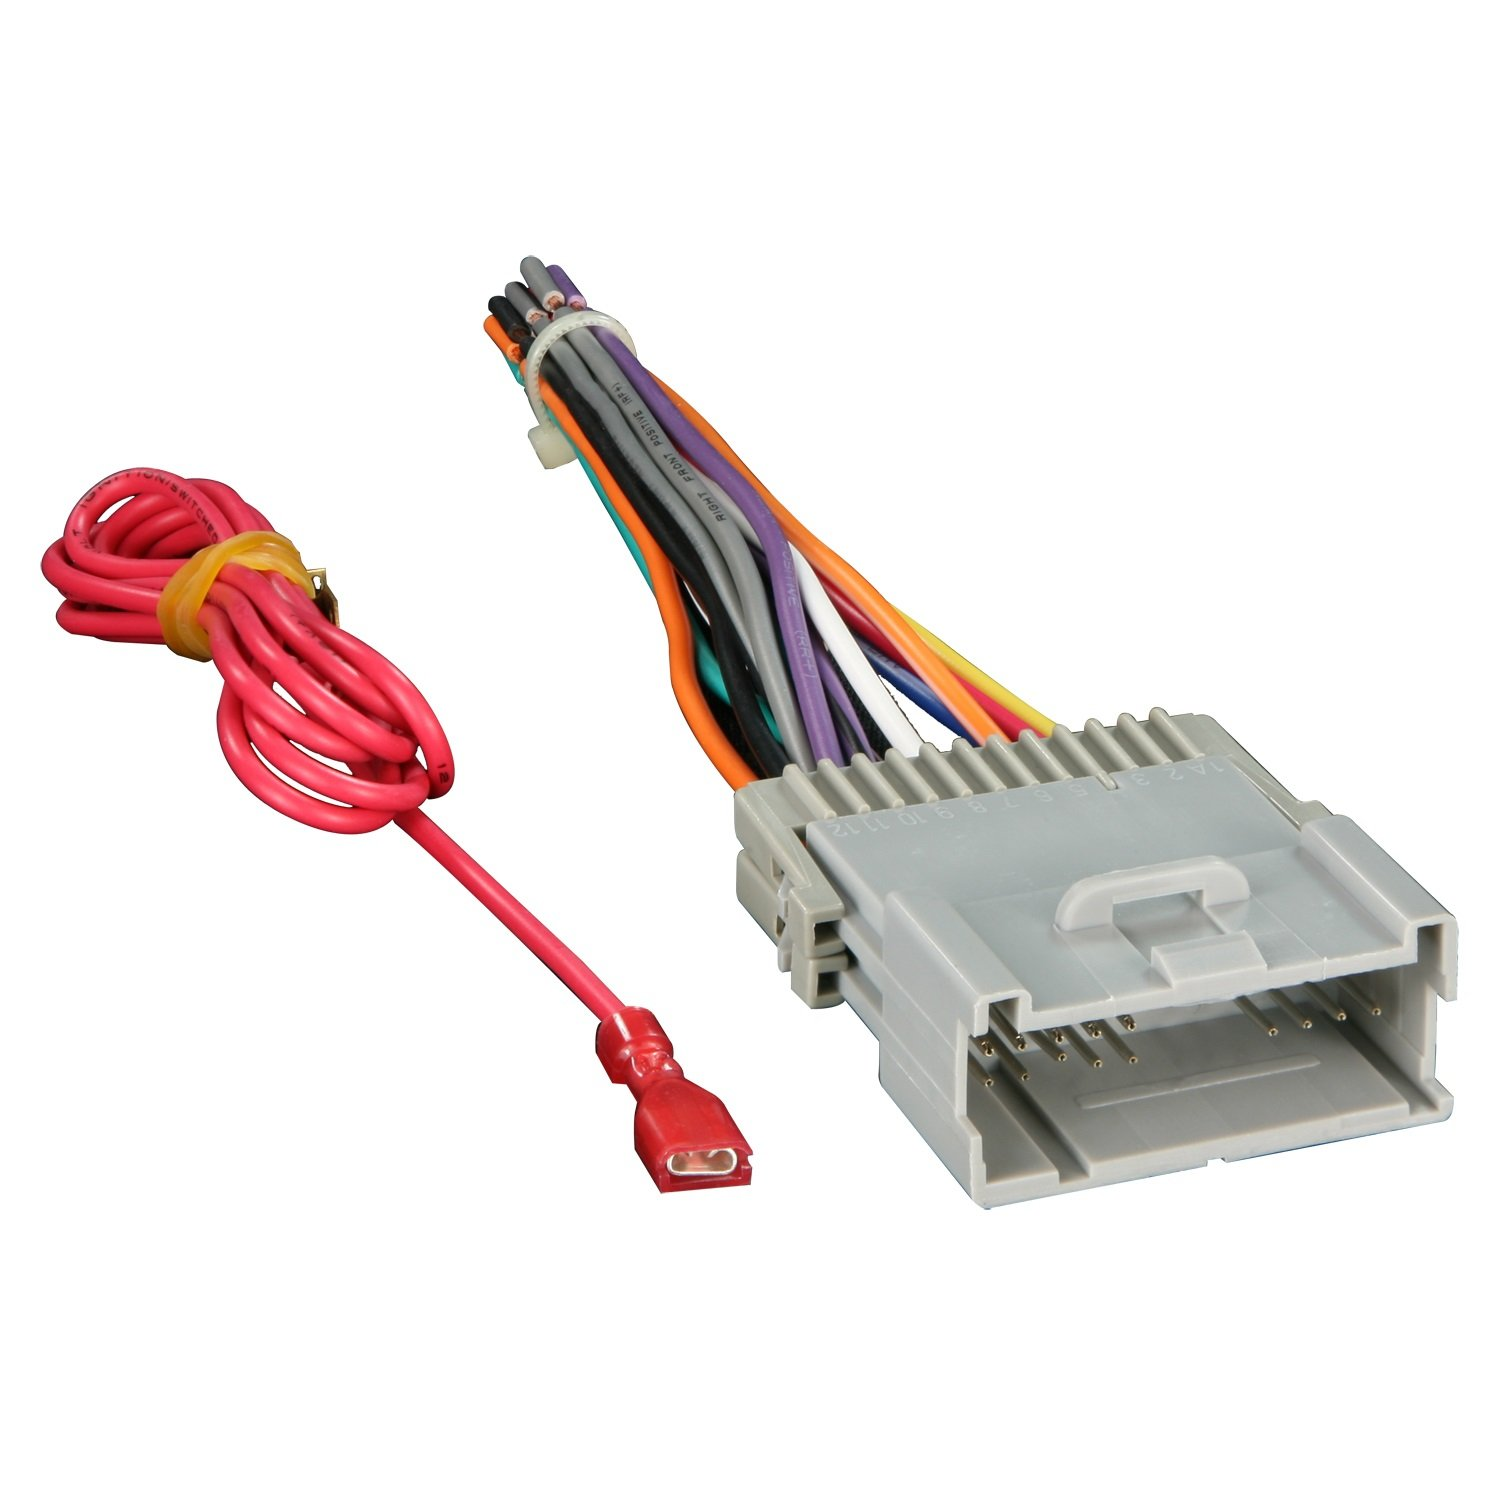 61eewxp9orL._SL1500_ amazon com metra 70 2003 radio wiring harness for gm 98 08 how to get wire out harness at n-0.co